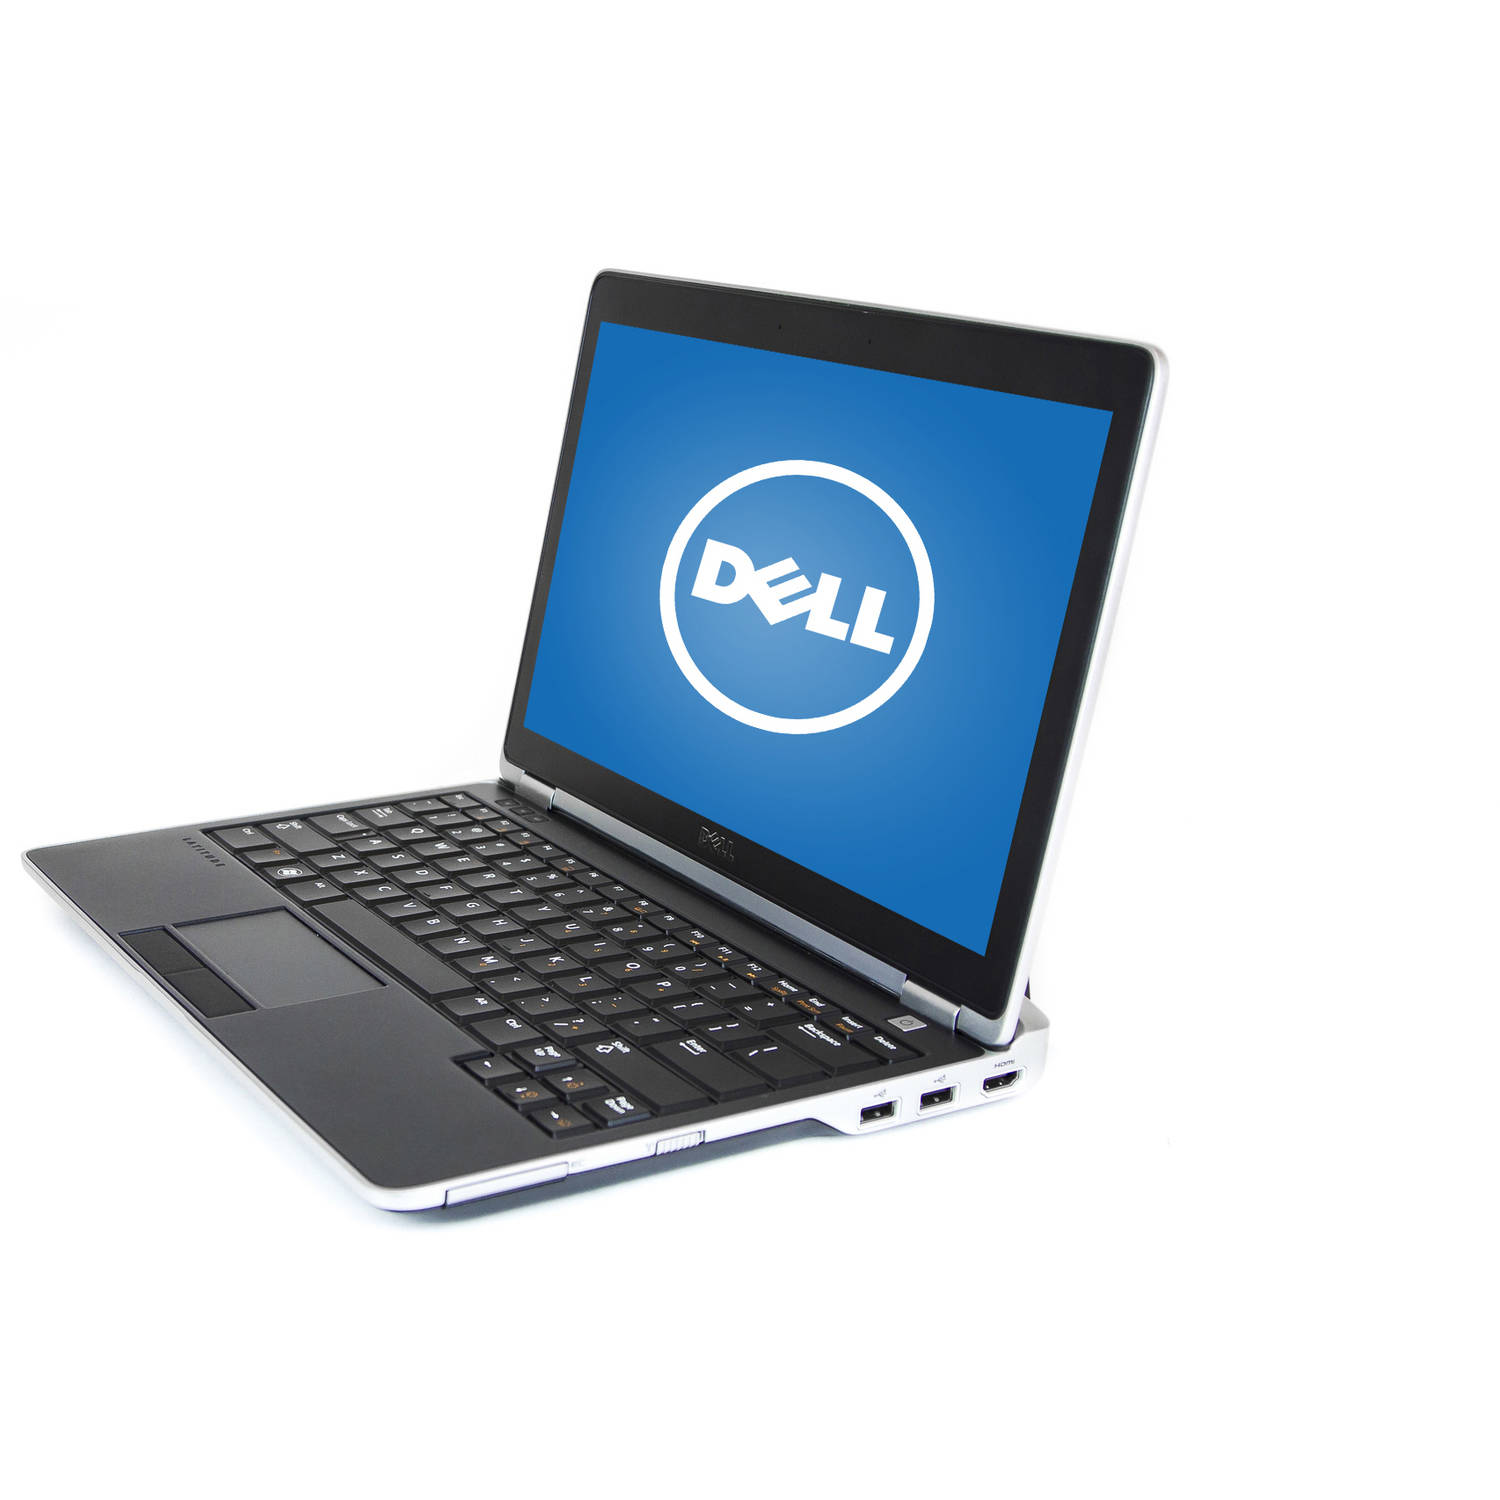 "Refurbished Dell Black 12.5"" E6230 Laptop PC with Intel Core i5-3220M Processor, 8GB Memory, 256GB SSD and Windows 10 Pro"